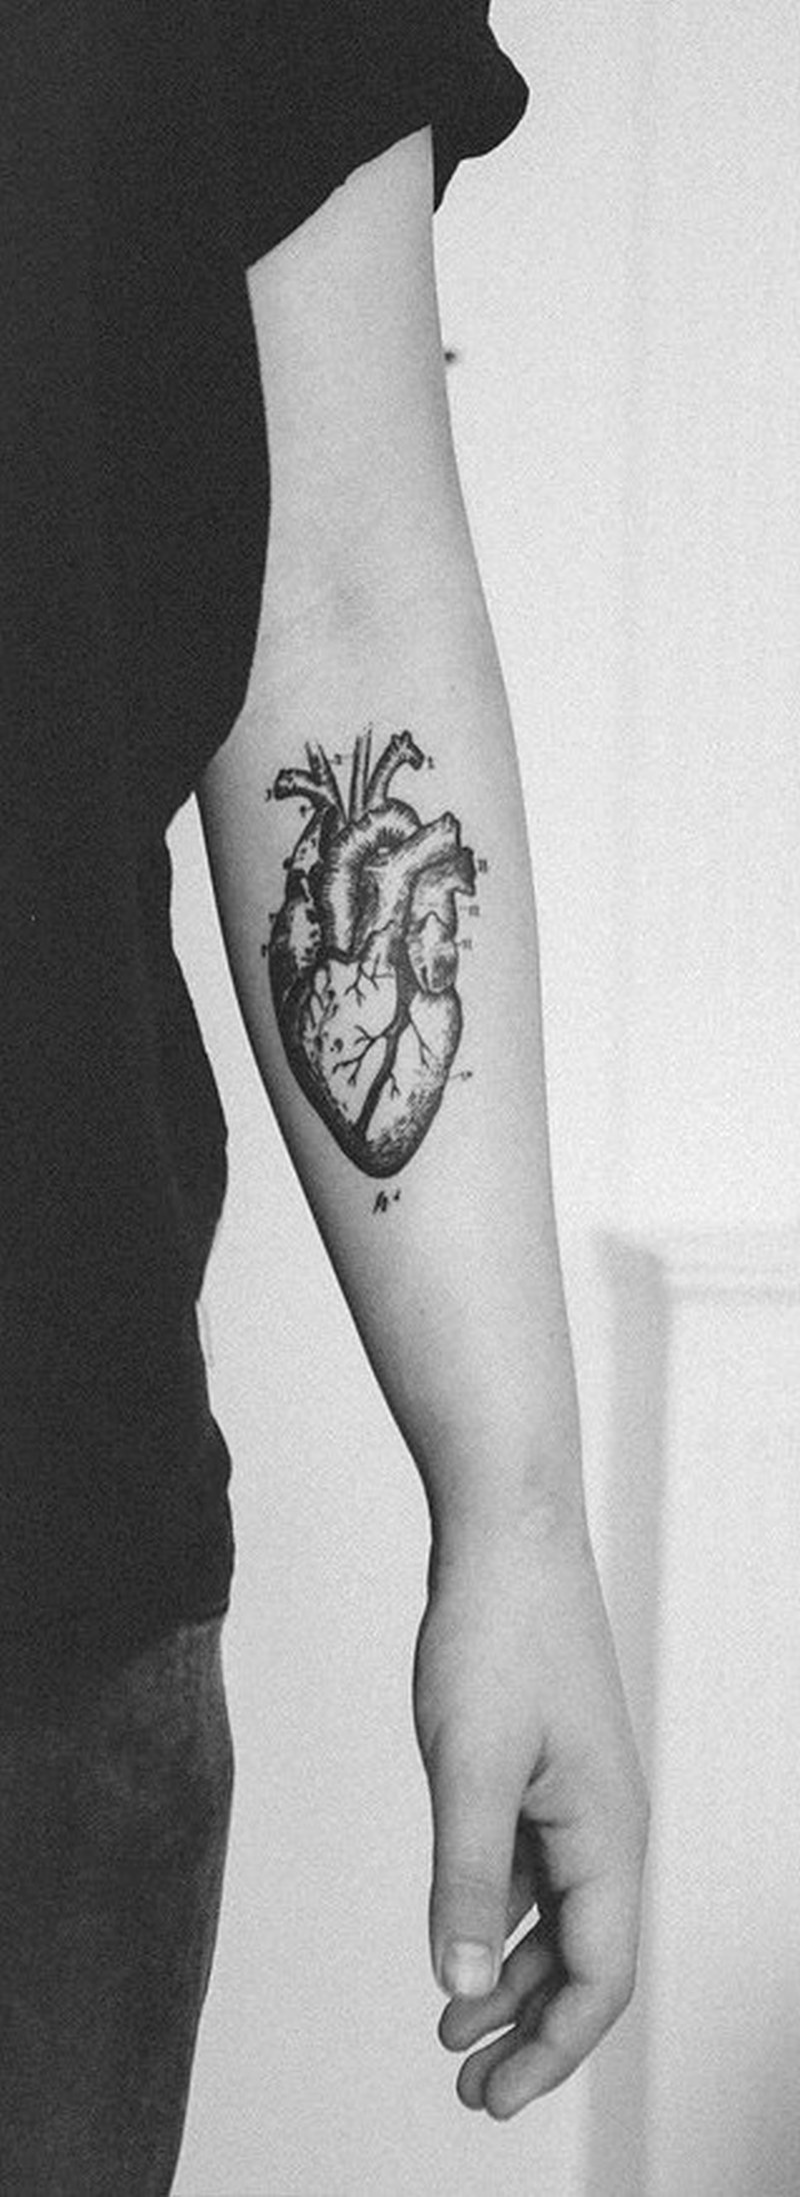 Vintage anatomical heart tattoo on forearm